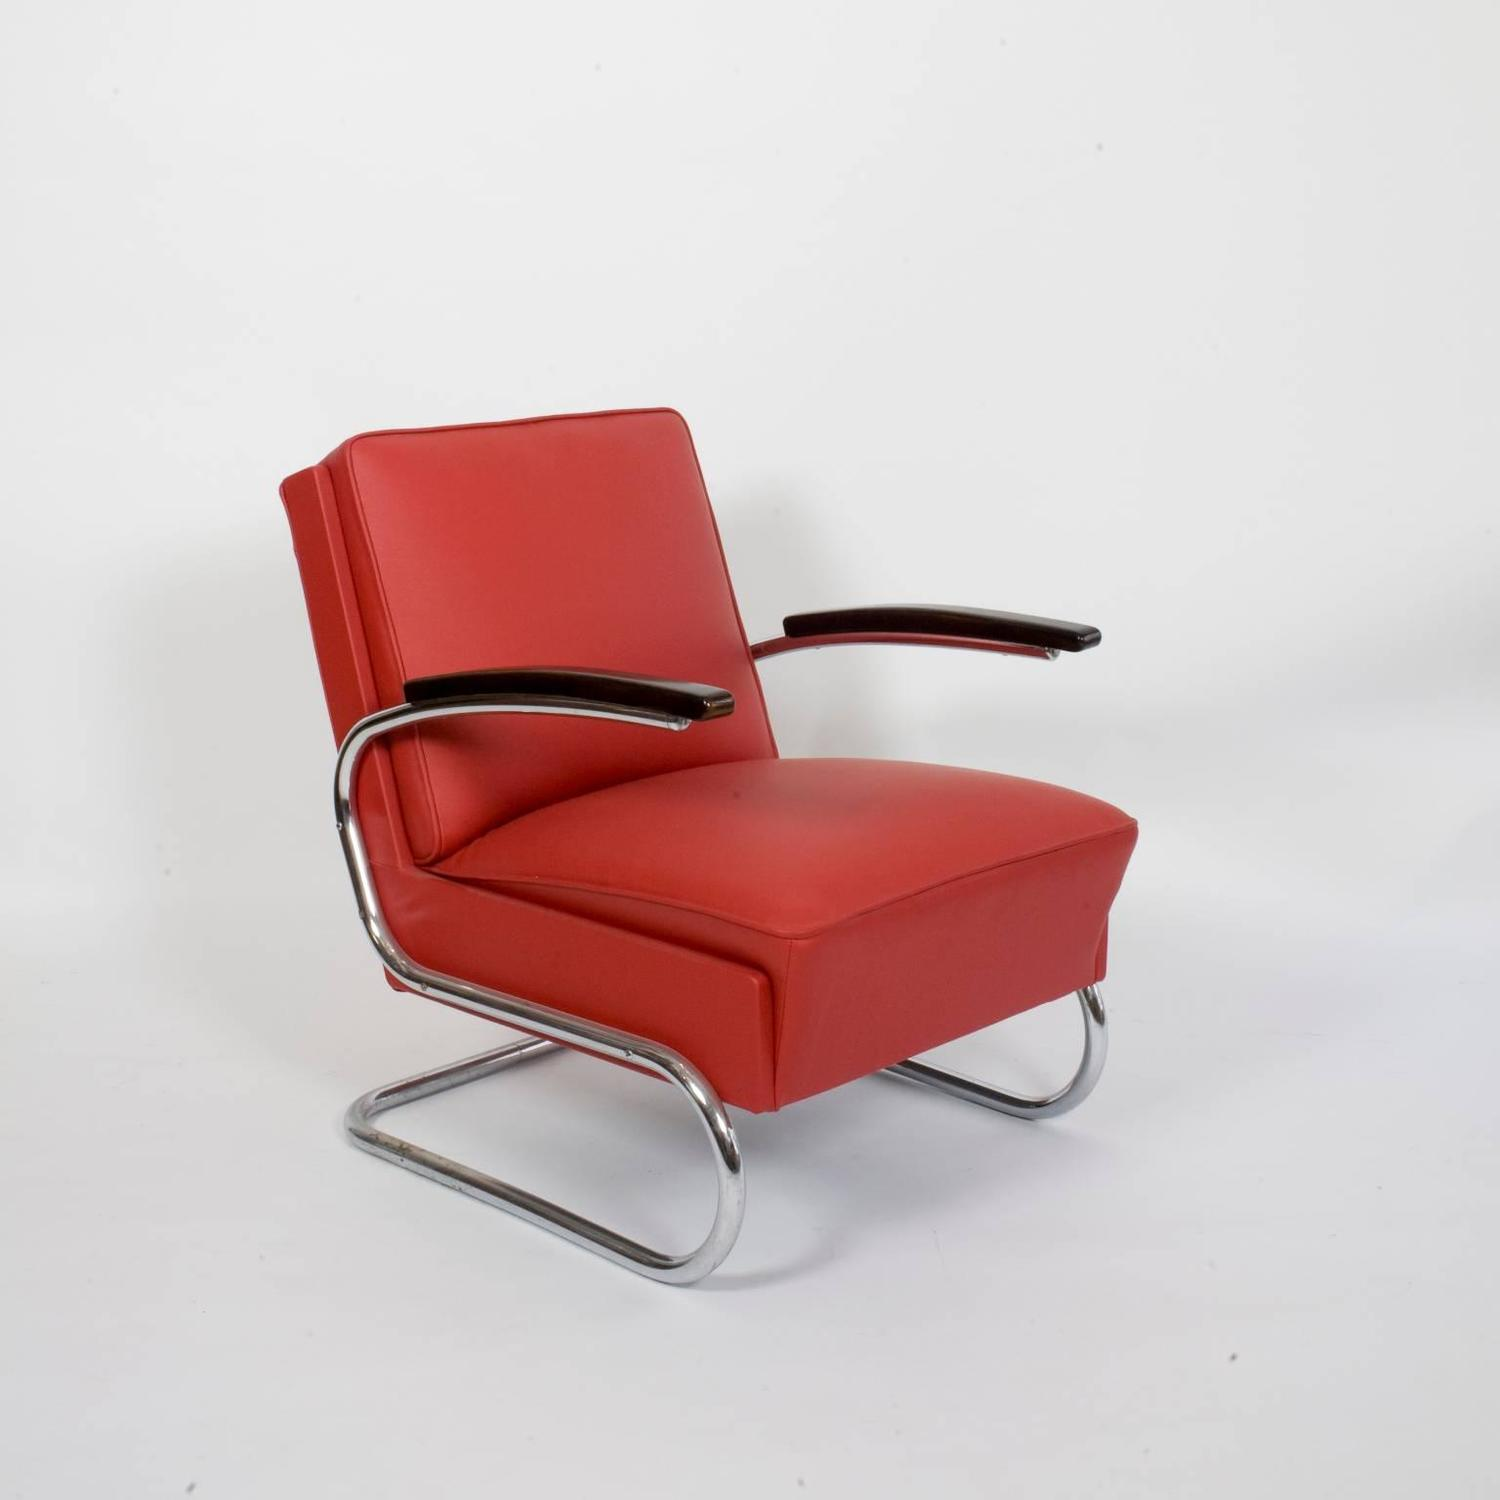 pair of 1930s bauhaus mauser steel tube club chairs for sale at 1stdibs. Black Bedroom Furniture Sets. Home Design Ideas